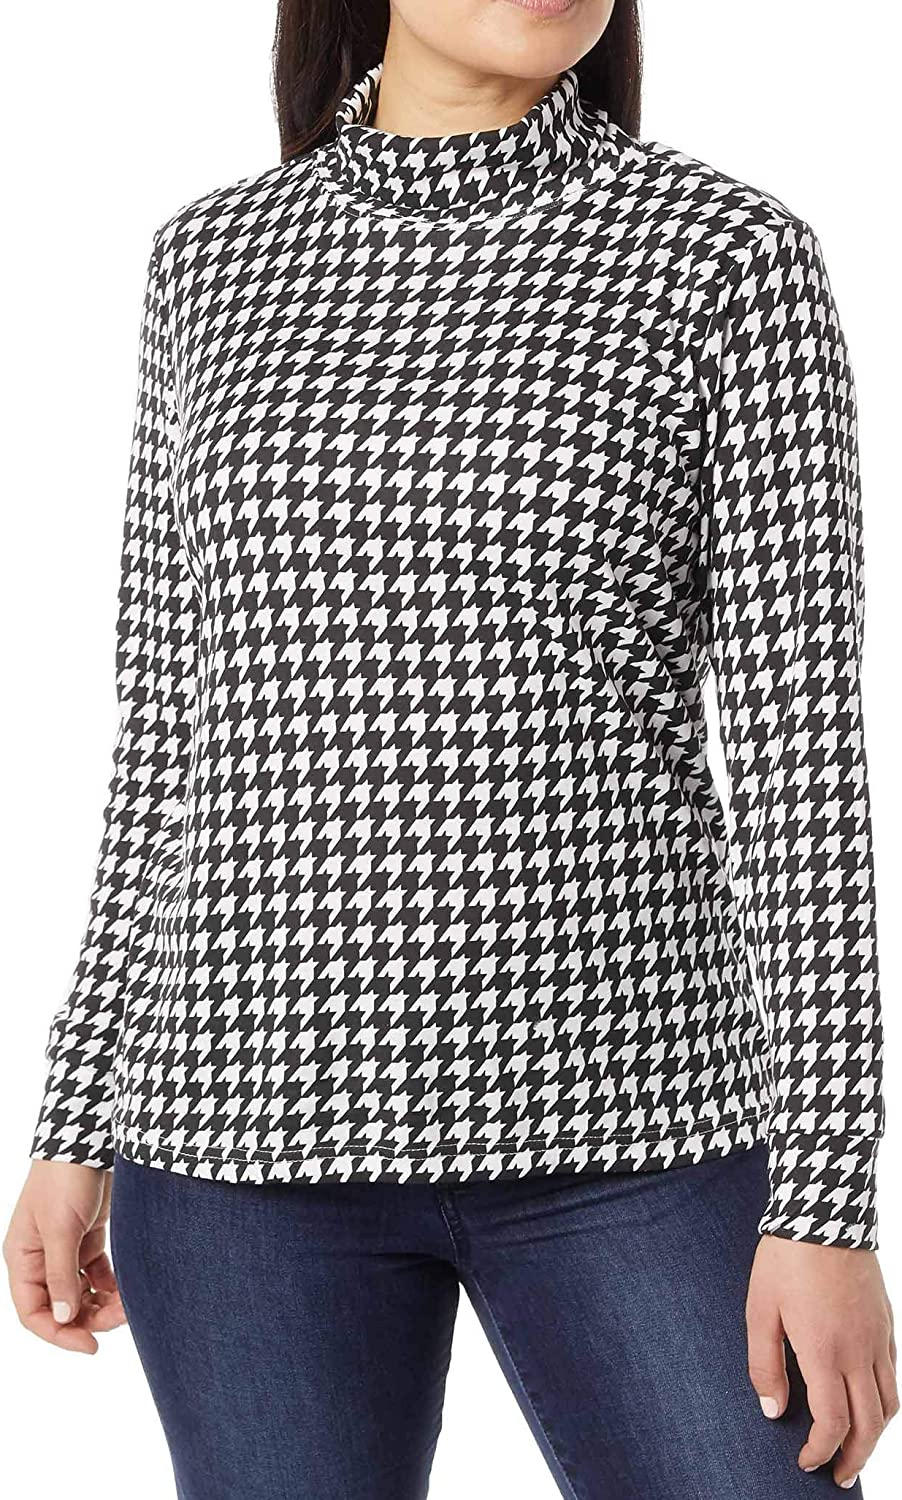 ANTHONY RICHARDS Women's Houndstooth or Polka Dot Knit Pullover Turtleneck Long Sleeves